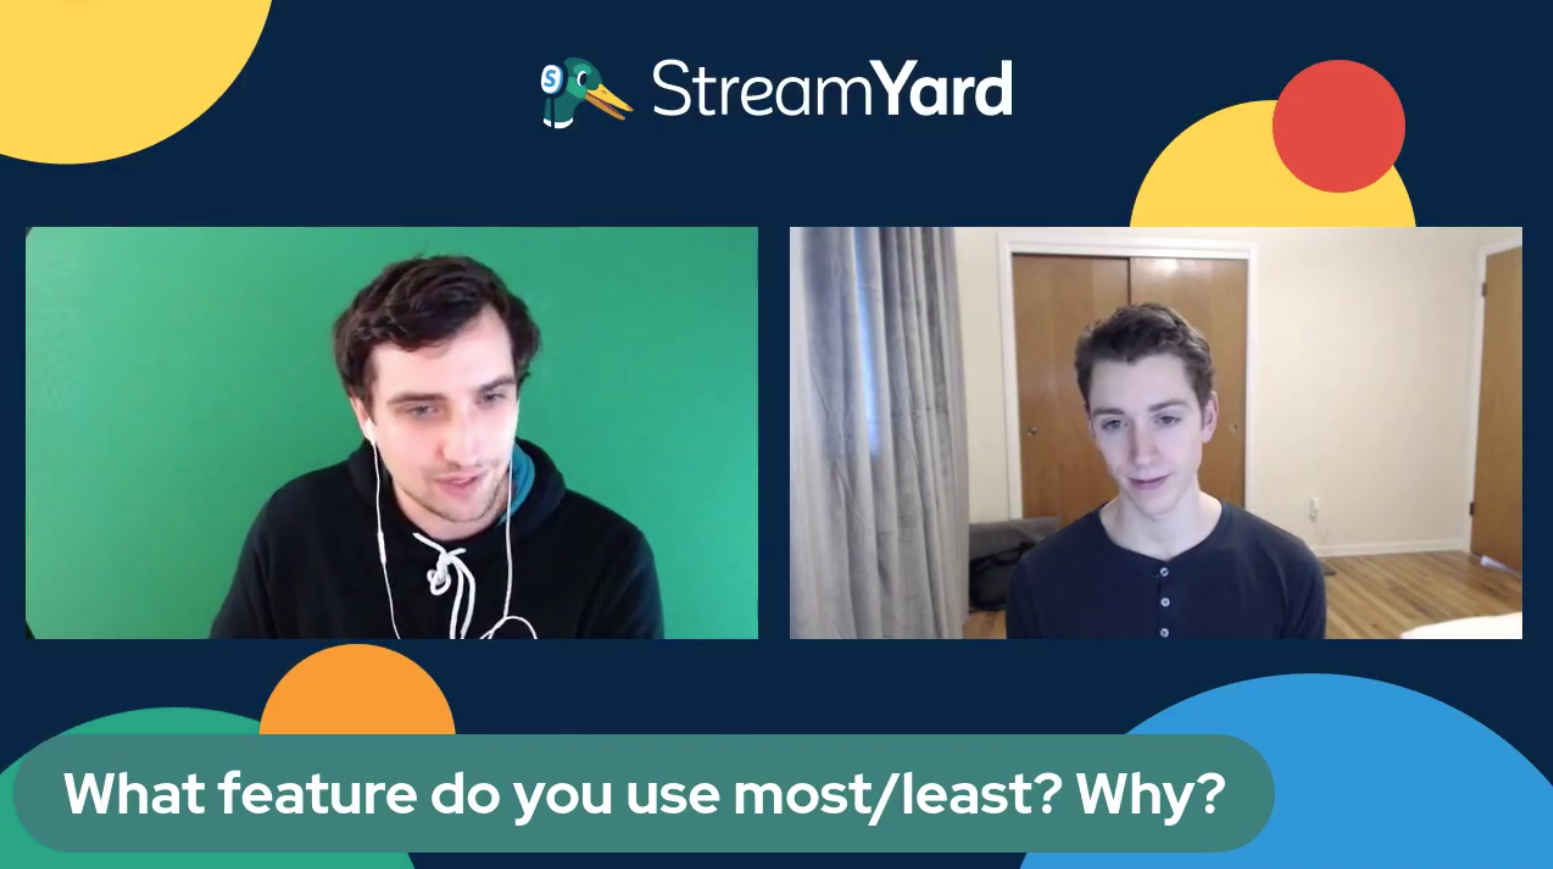 11 What are you most and least used features of Streamyard - Streamyard Town Hall 116